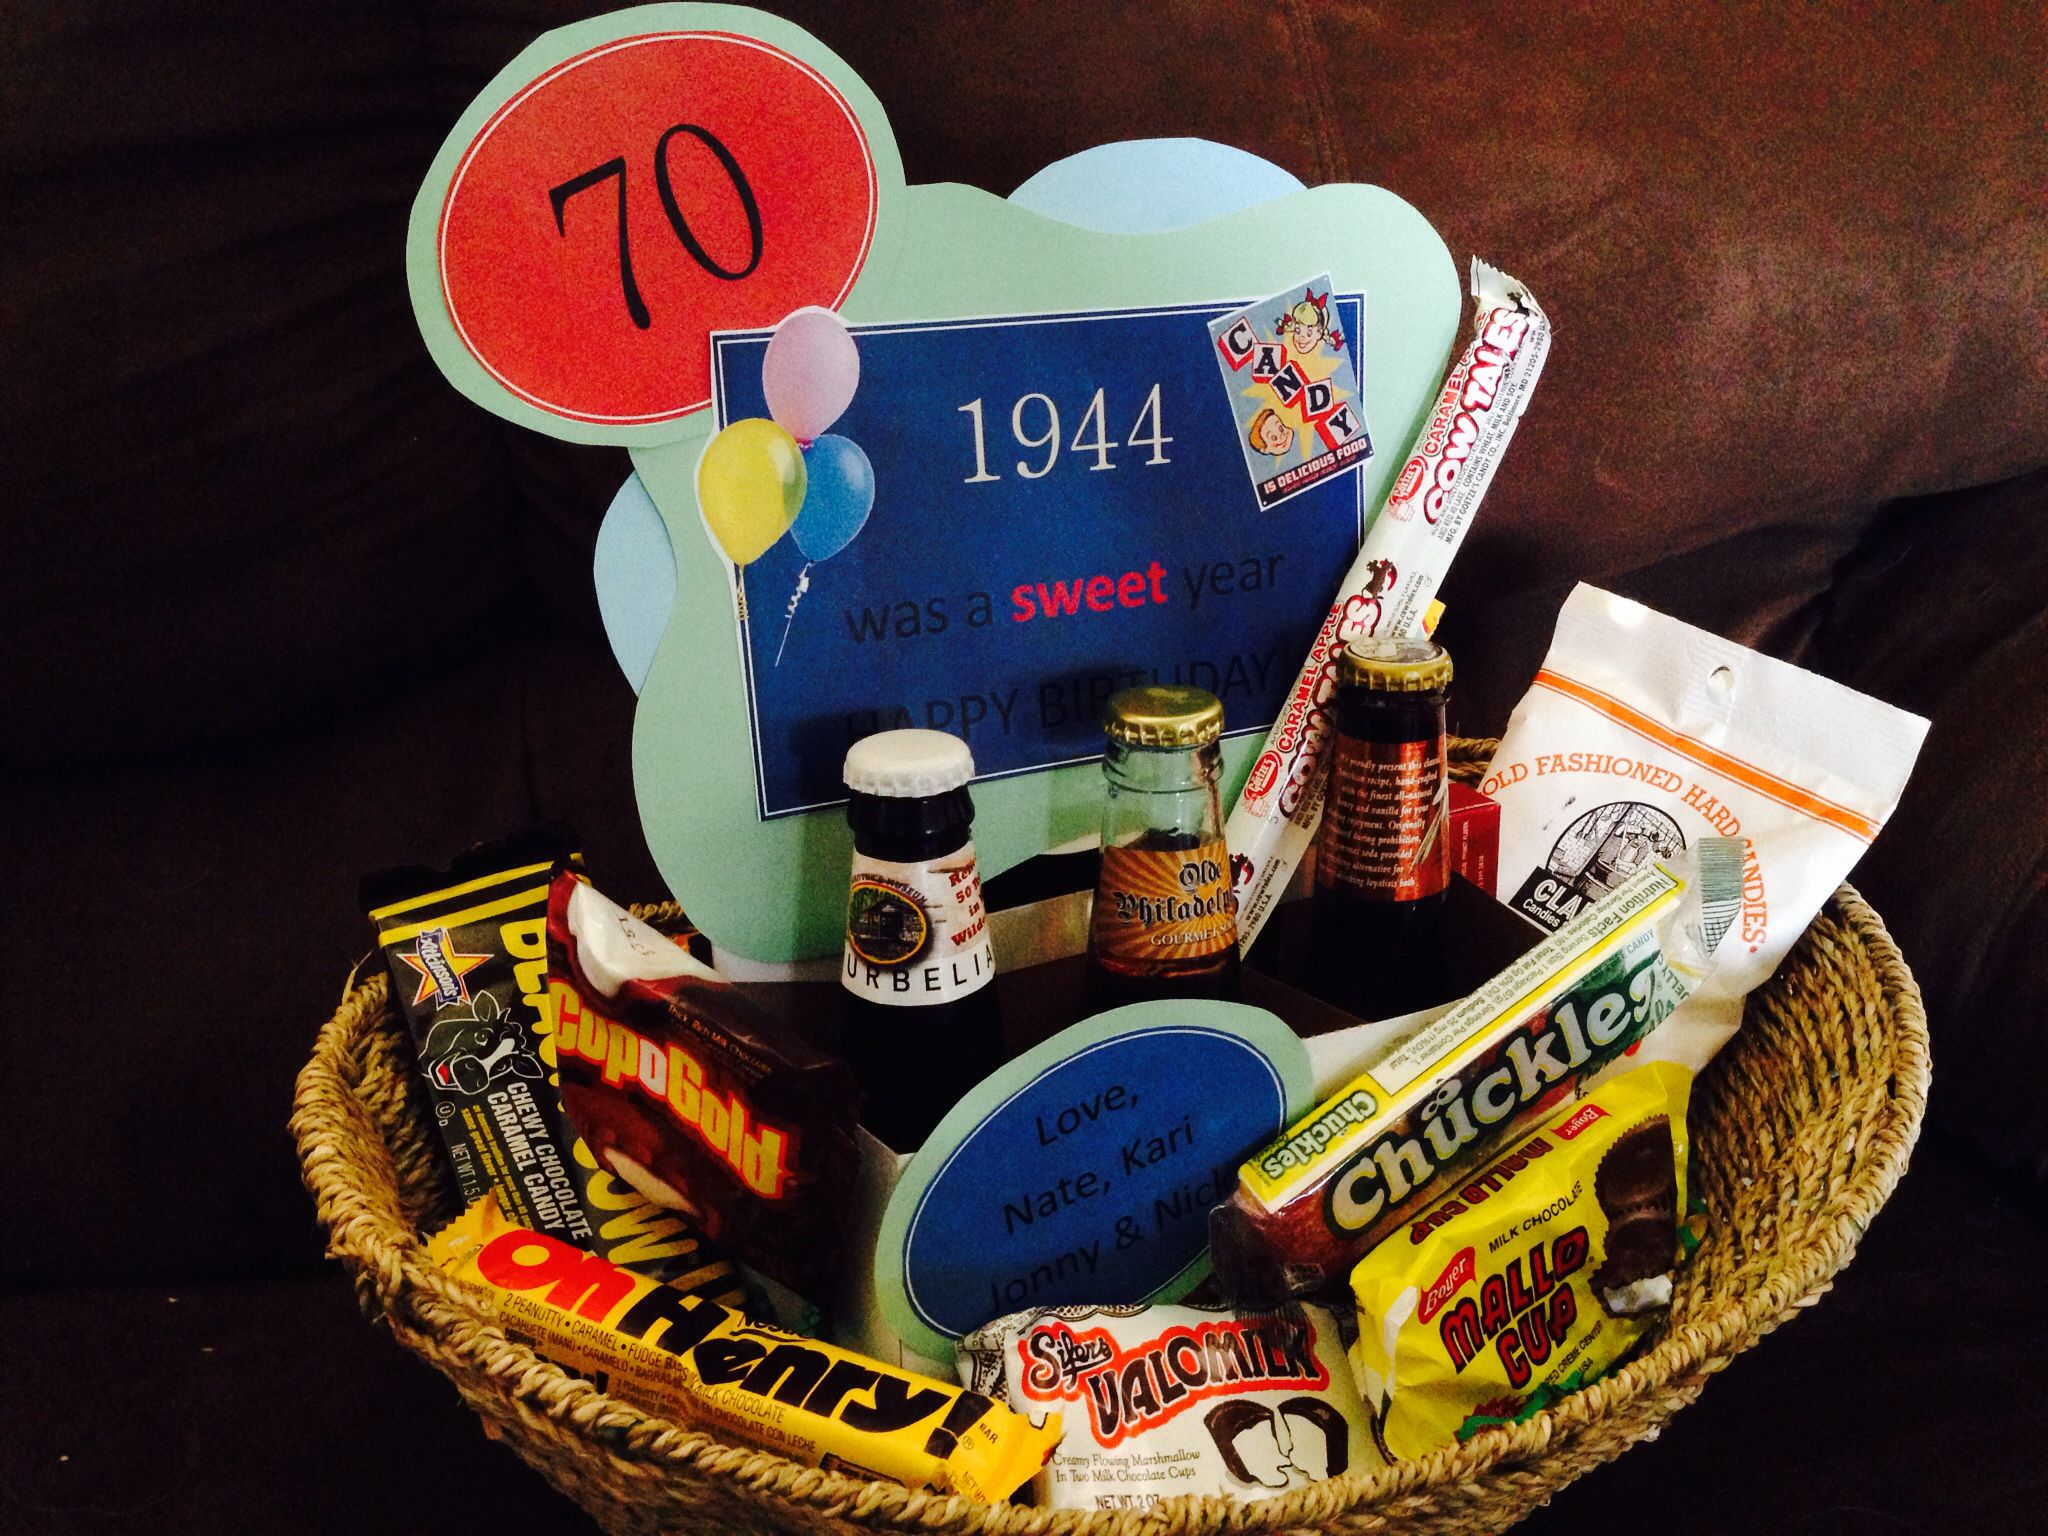 70th Birthday Gift Idea 1944 Was A Sweet Year Basket Filled With Vintage Candy And Bottle Of Pop Labels